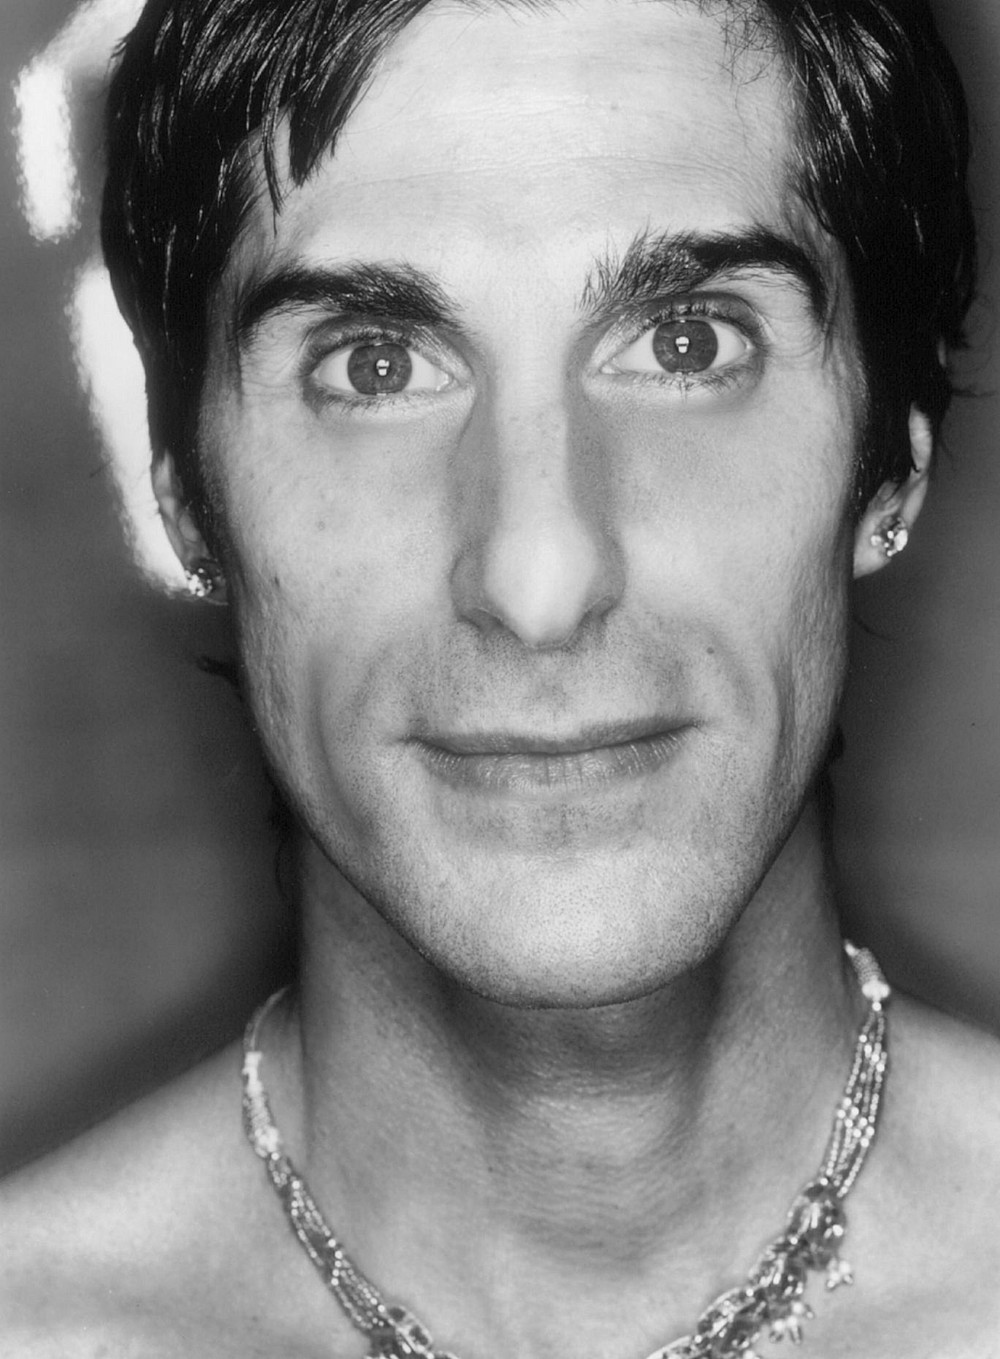 perry farrell on spotify